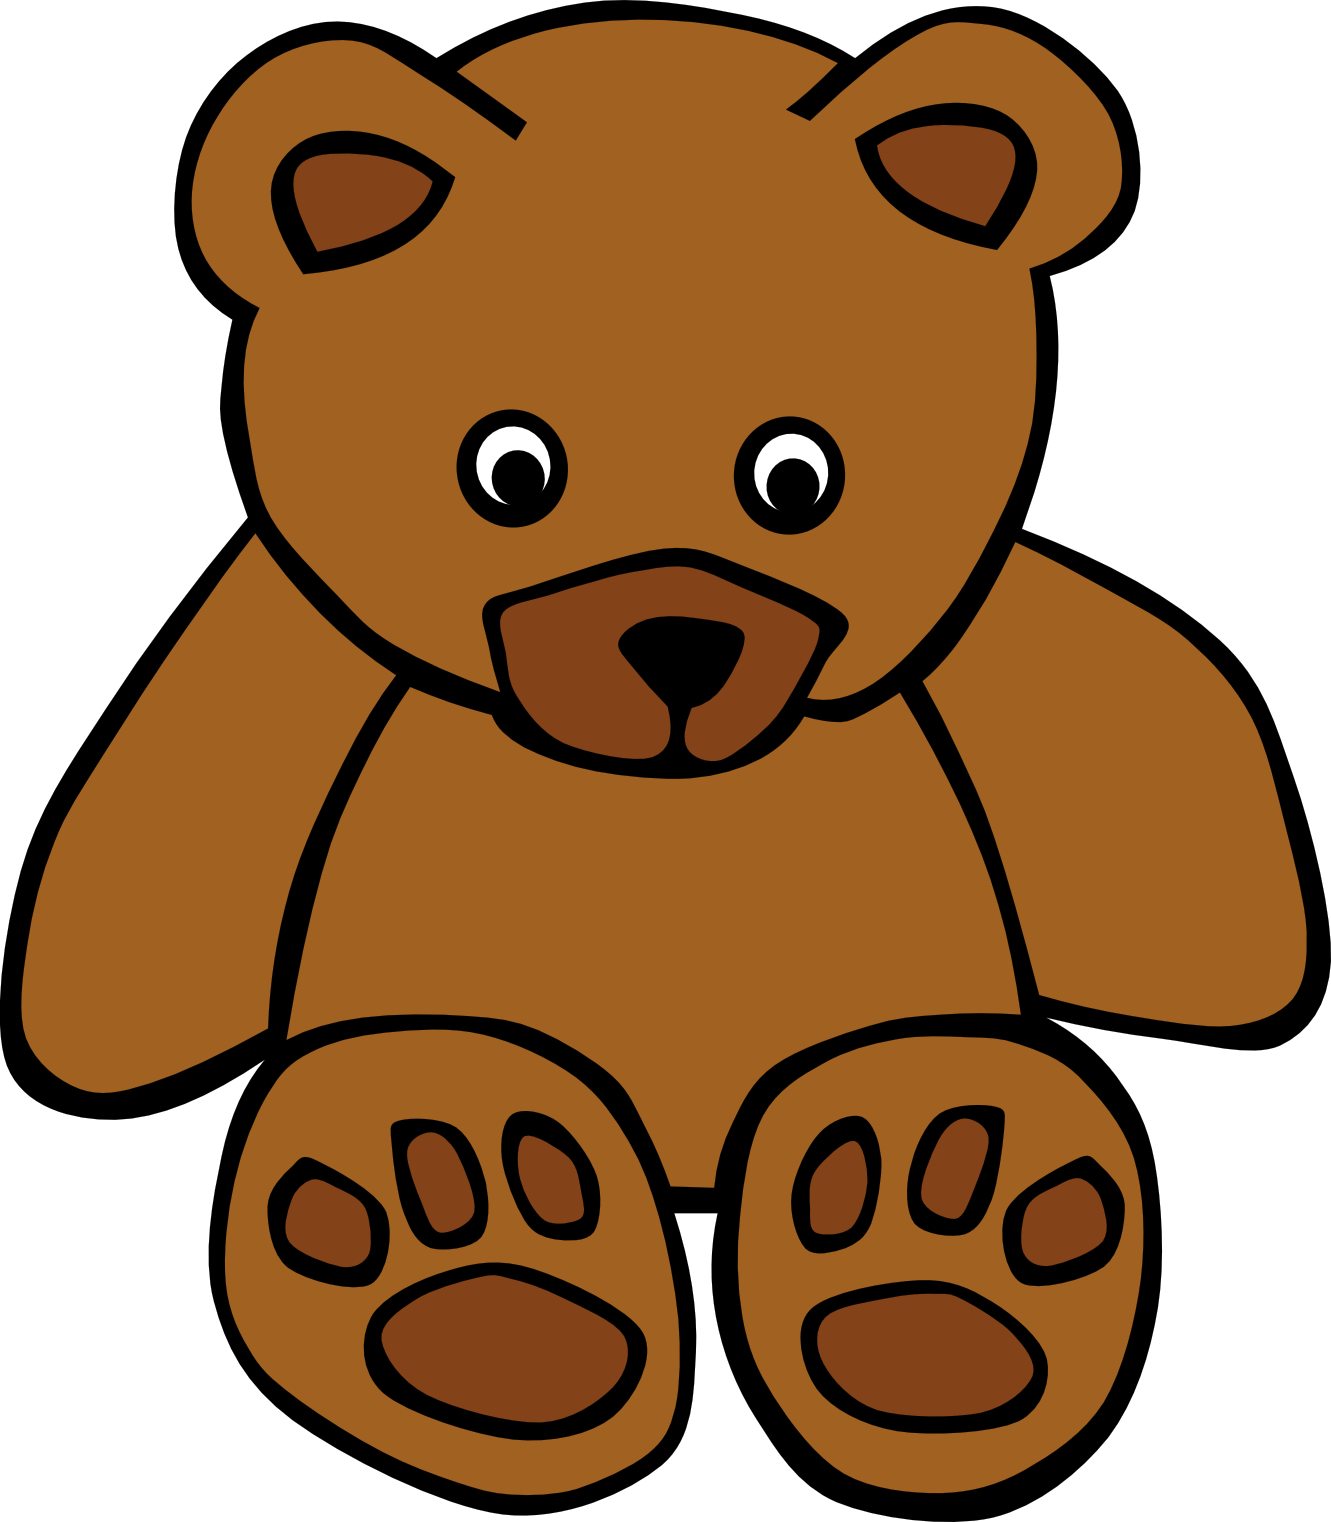 svg royalty free download . Stuffed animal clipart